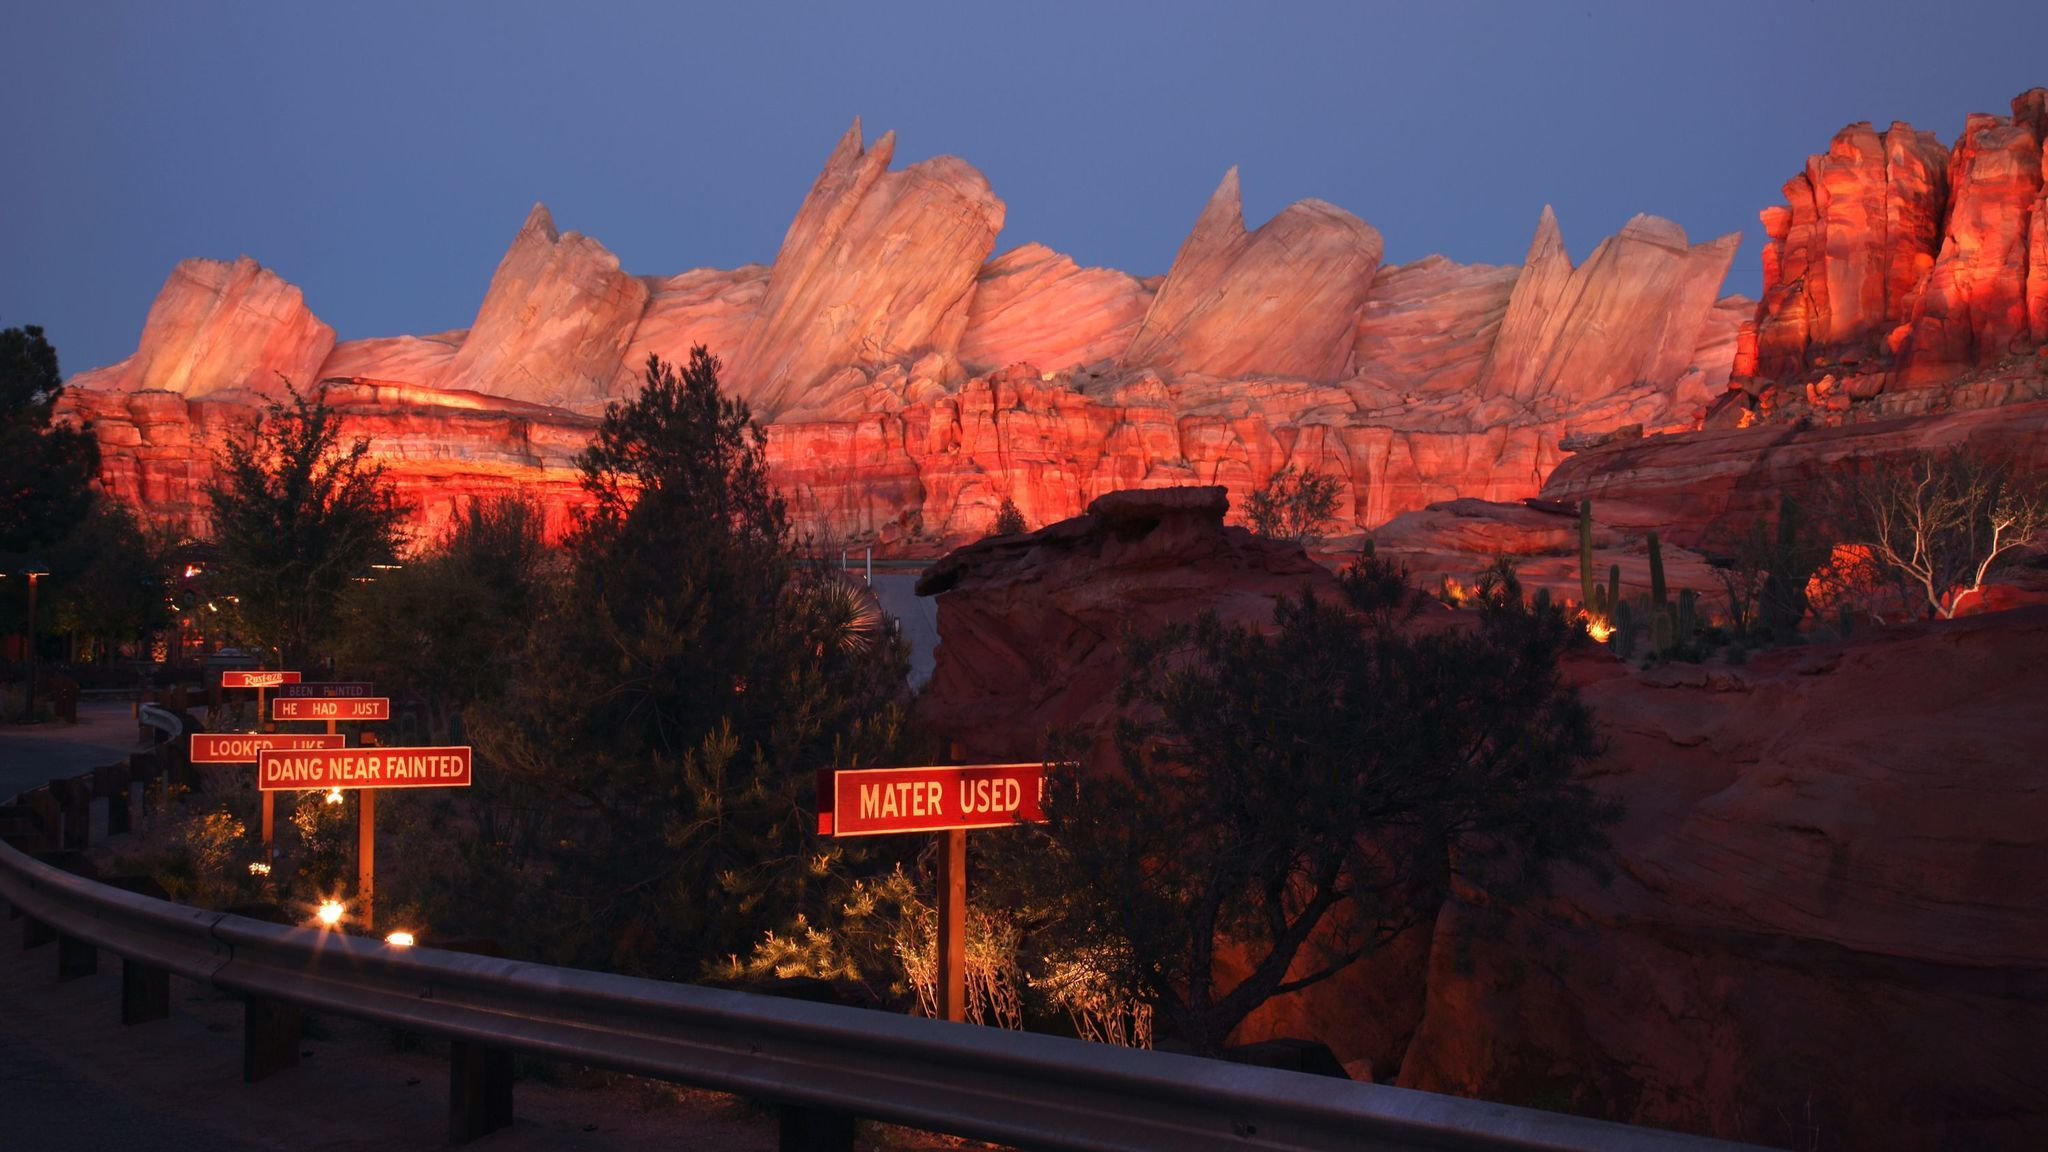 Cars Land at Disney California Adventure represents one of the theme park's most meticulously detailed areas.